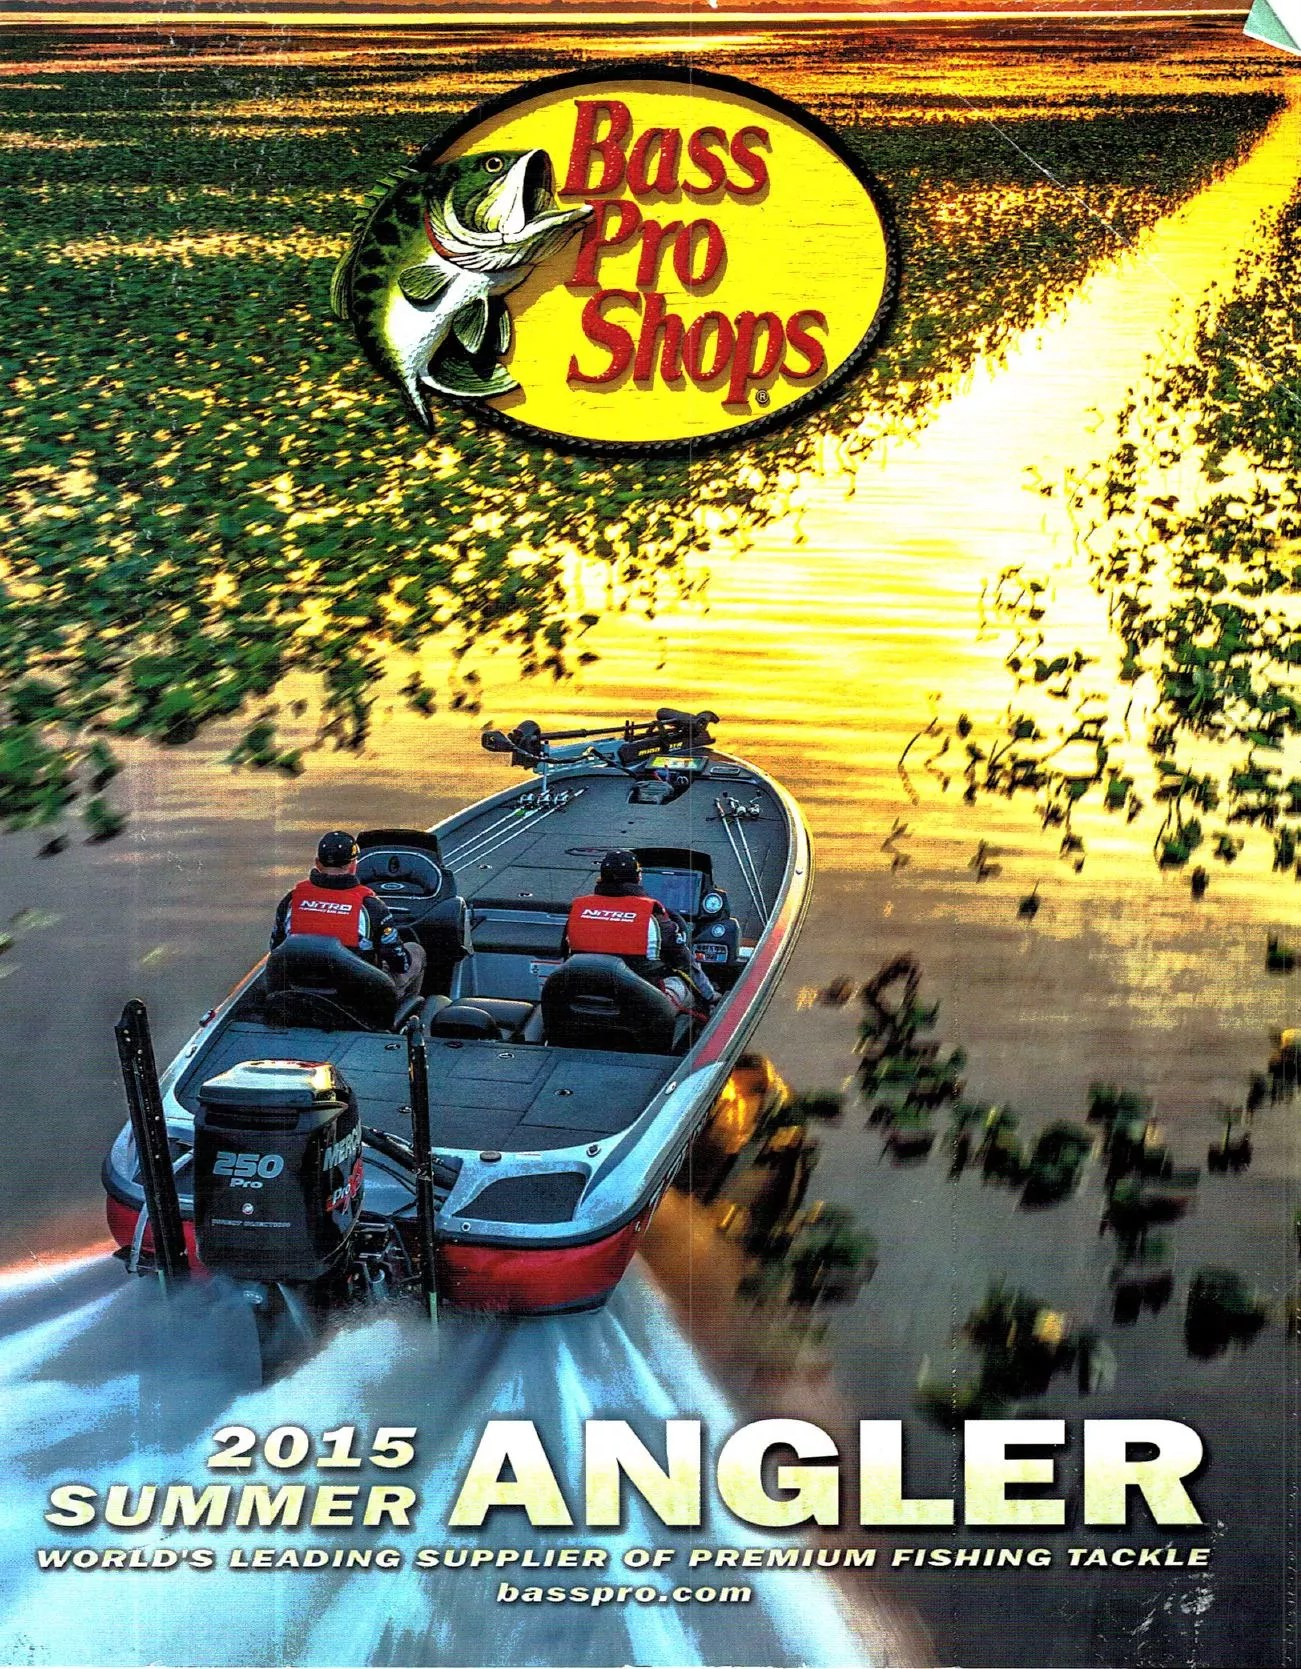 Bass Pro Shop Summer Angler Catalog 2015 – ORCA